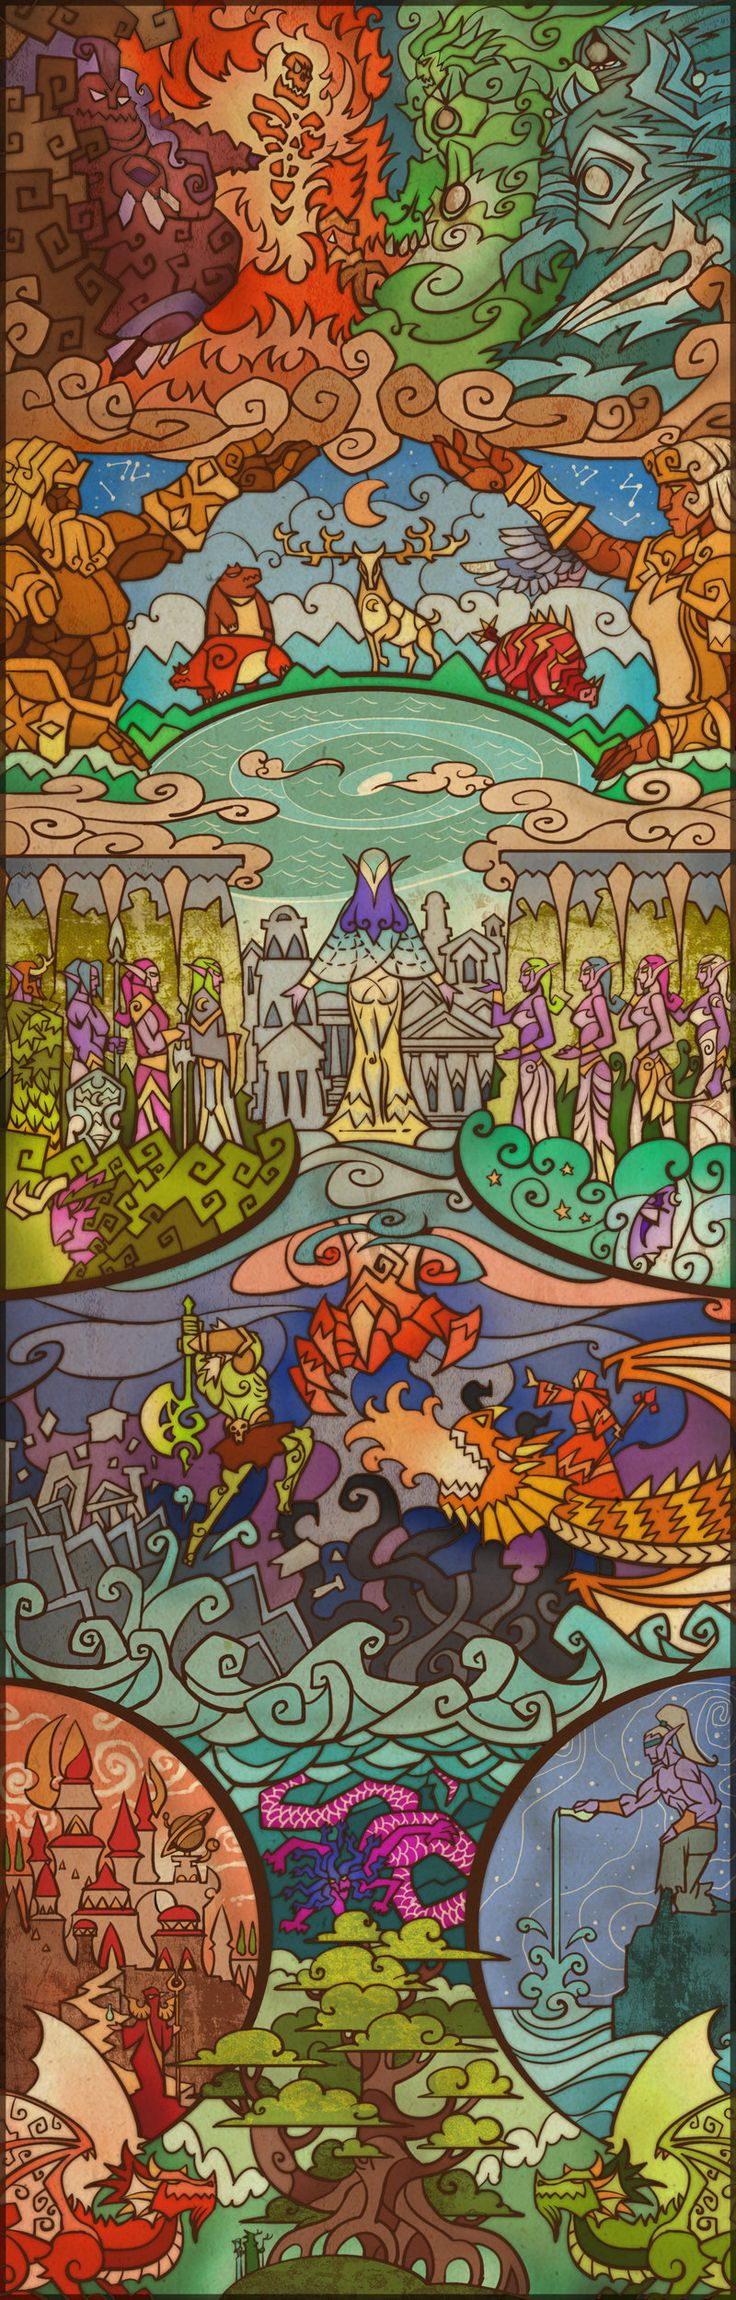 World of Warcraft by Jian Guo